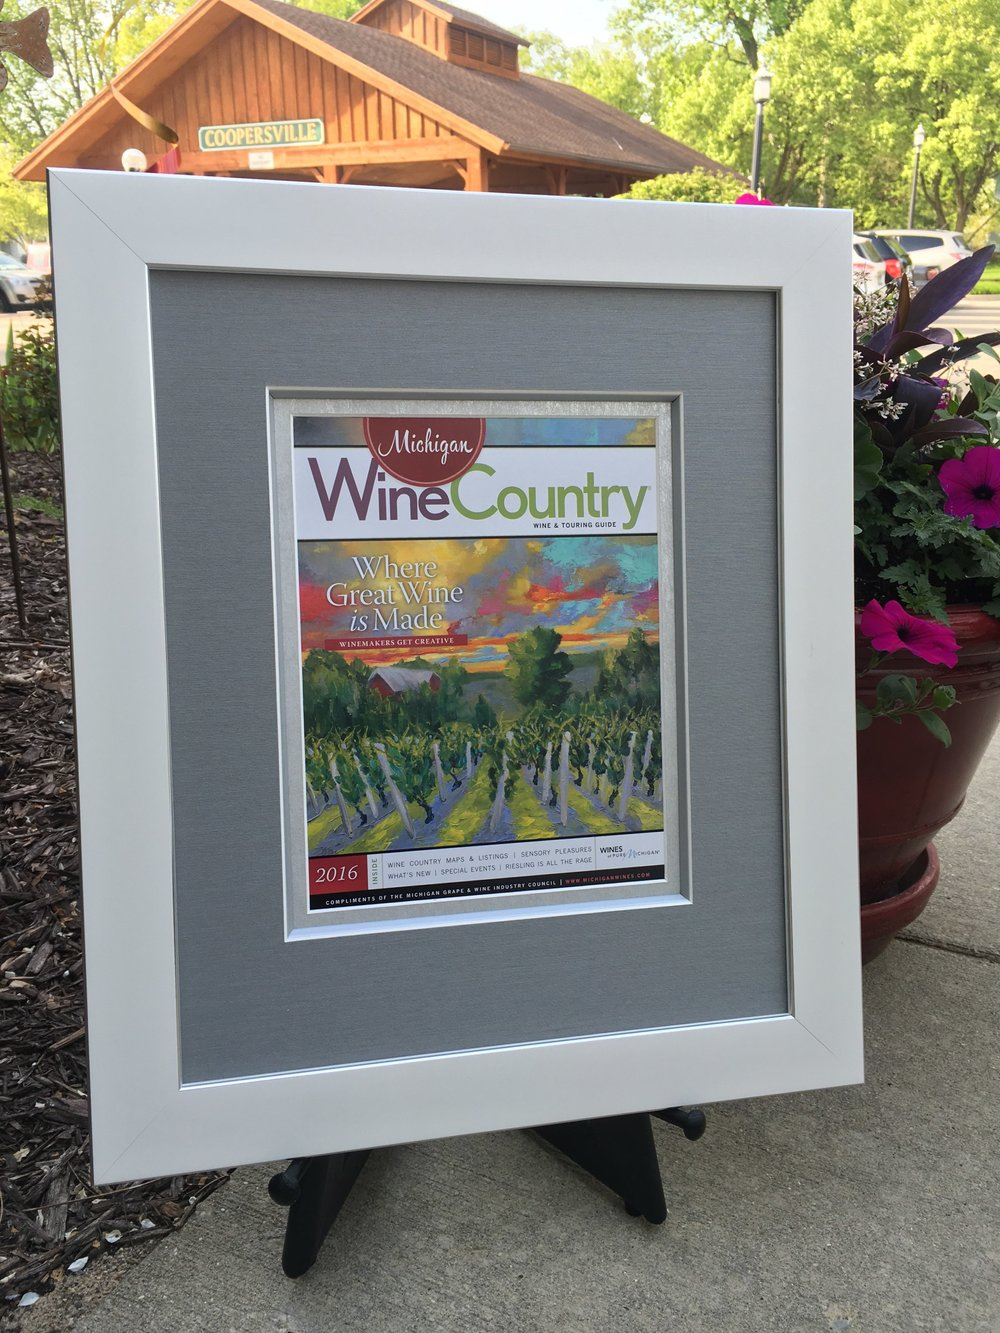 gallery_293_michigan_wine_country_frame.jpg